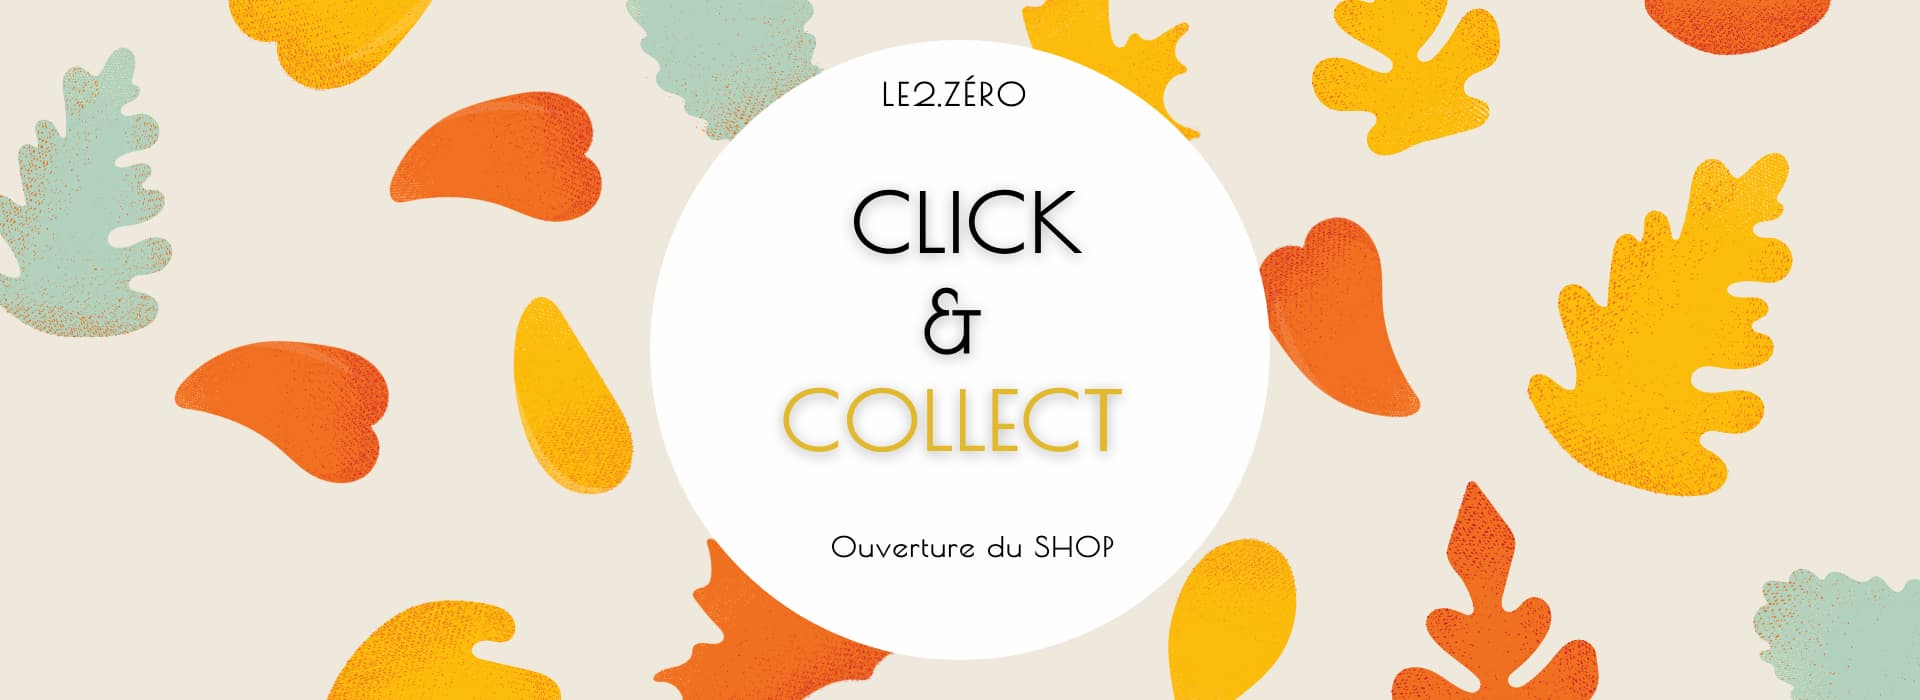 click-collect-le2pointzero2